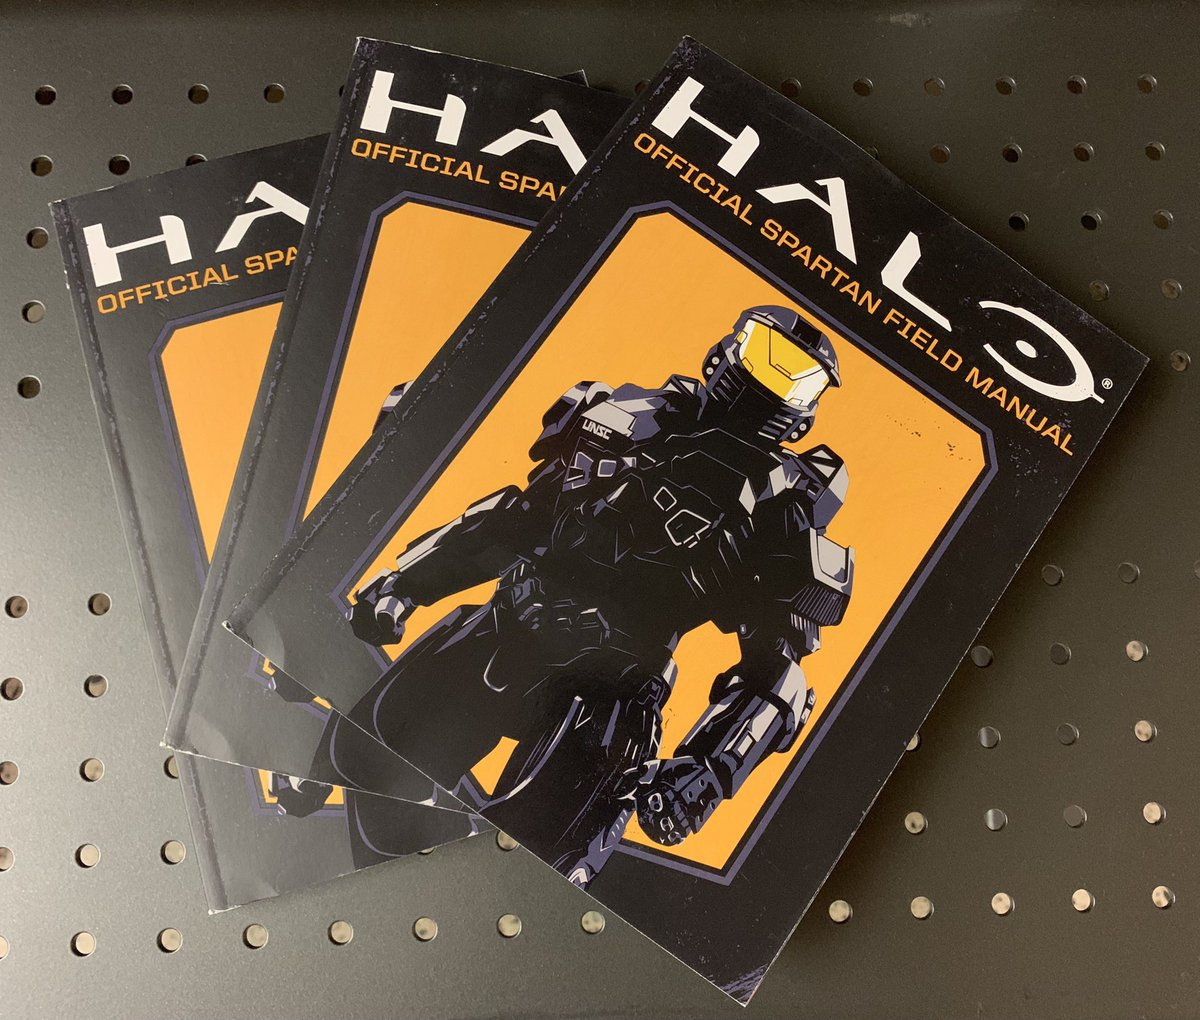 We've got some copies of the @Scholastic Halo Official Spartan Field Manual signed by author and resident franchise writer Kenneth Peters. Follow & RT for a chance to win! #HaloContest